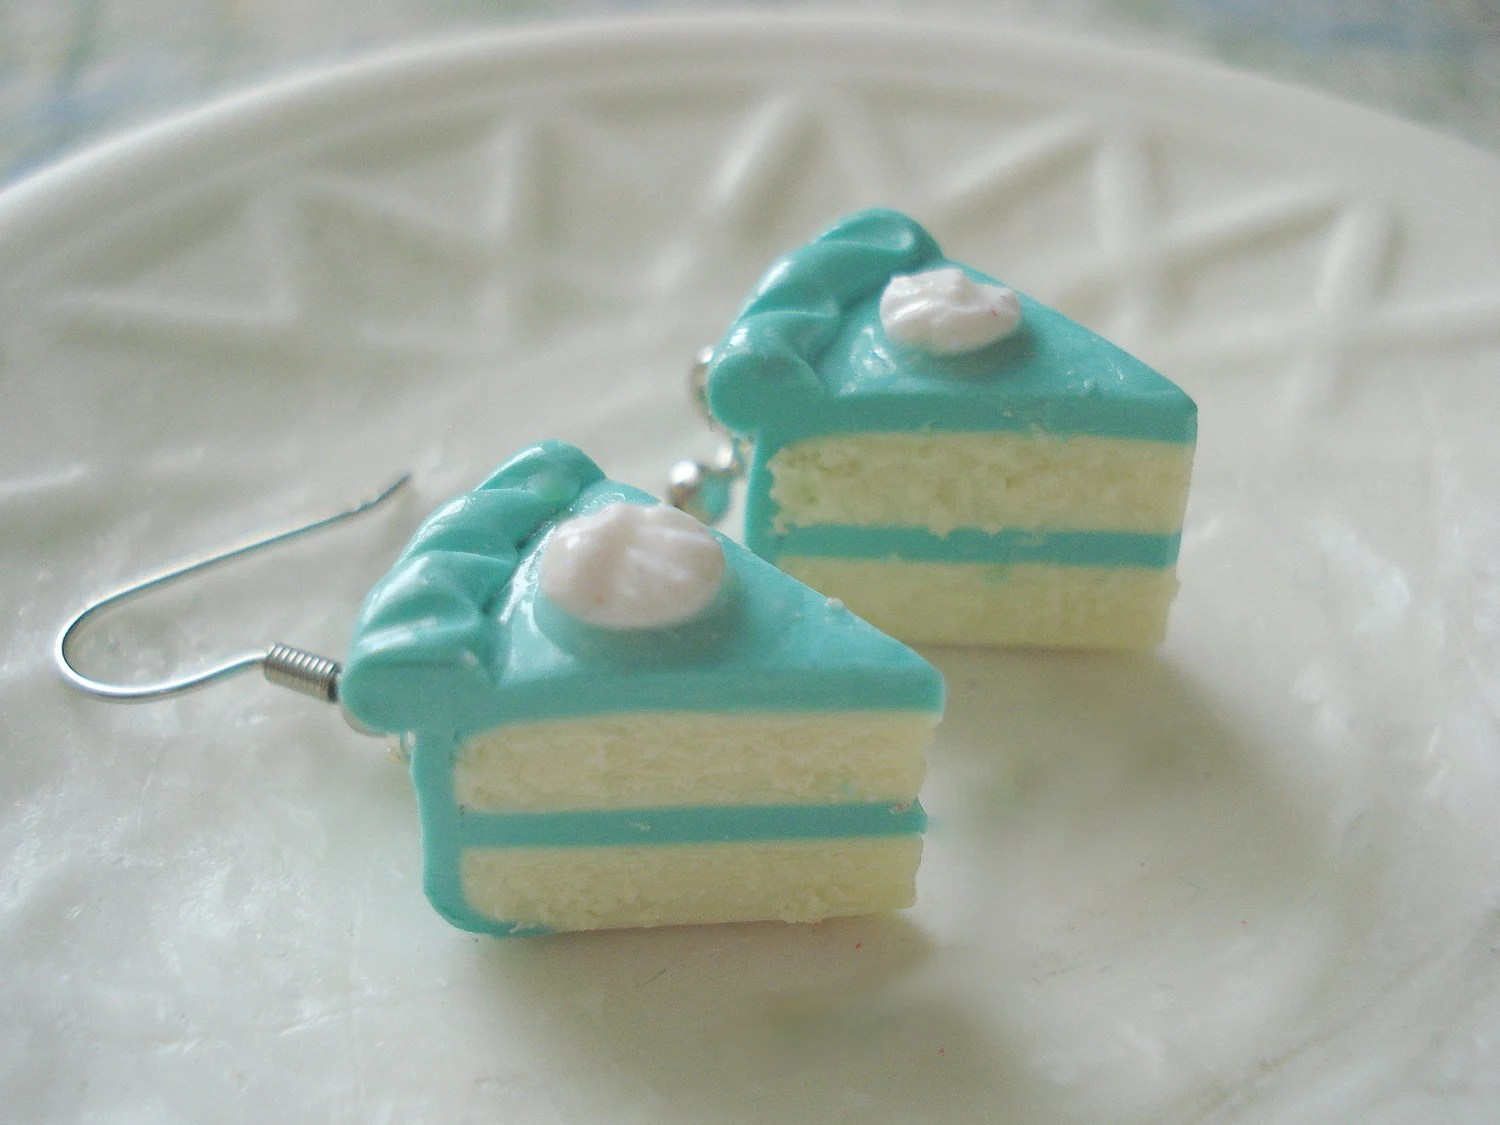 Teal Dream Cake Slice Earrings Miniature Food Jewelry - fakerybakery2